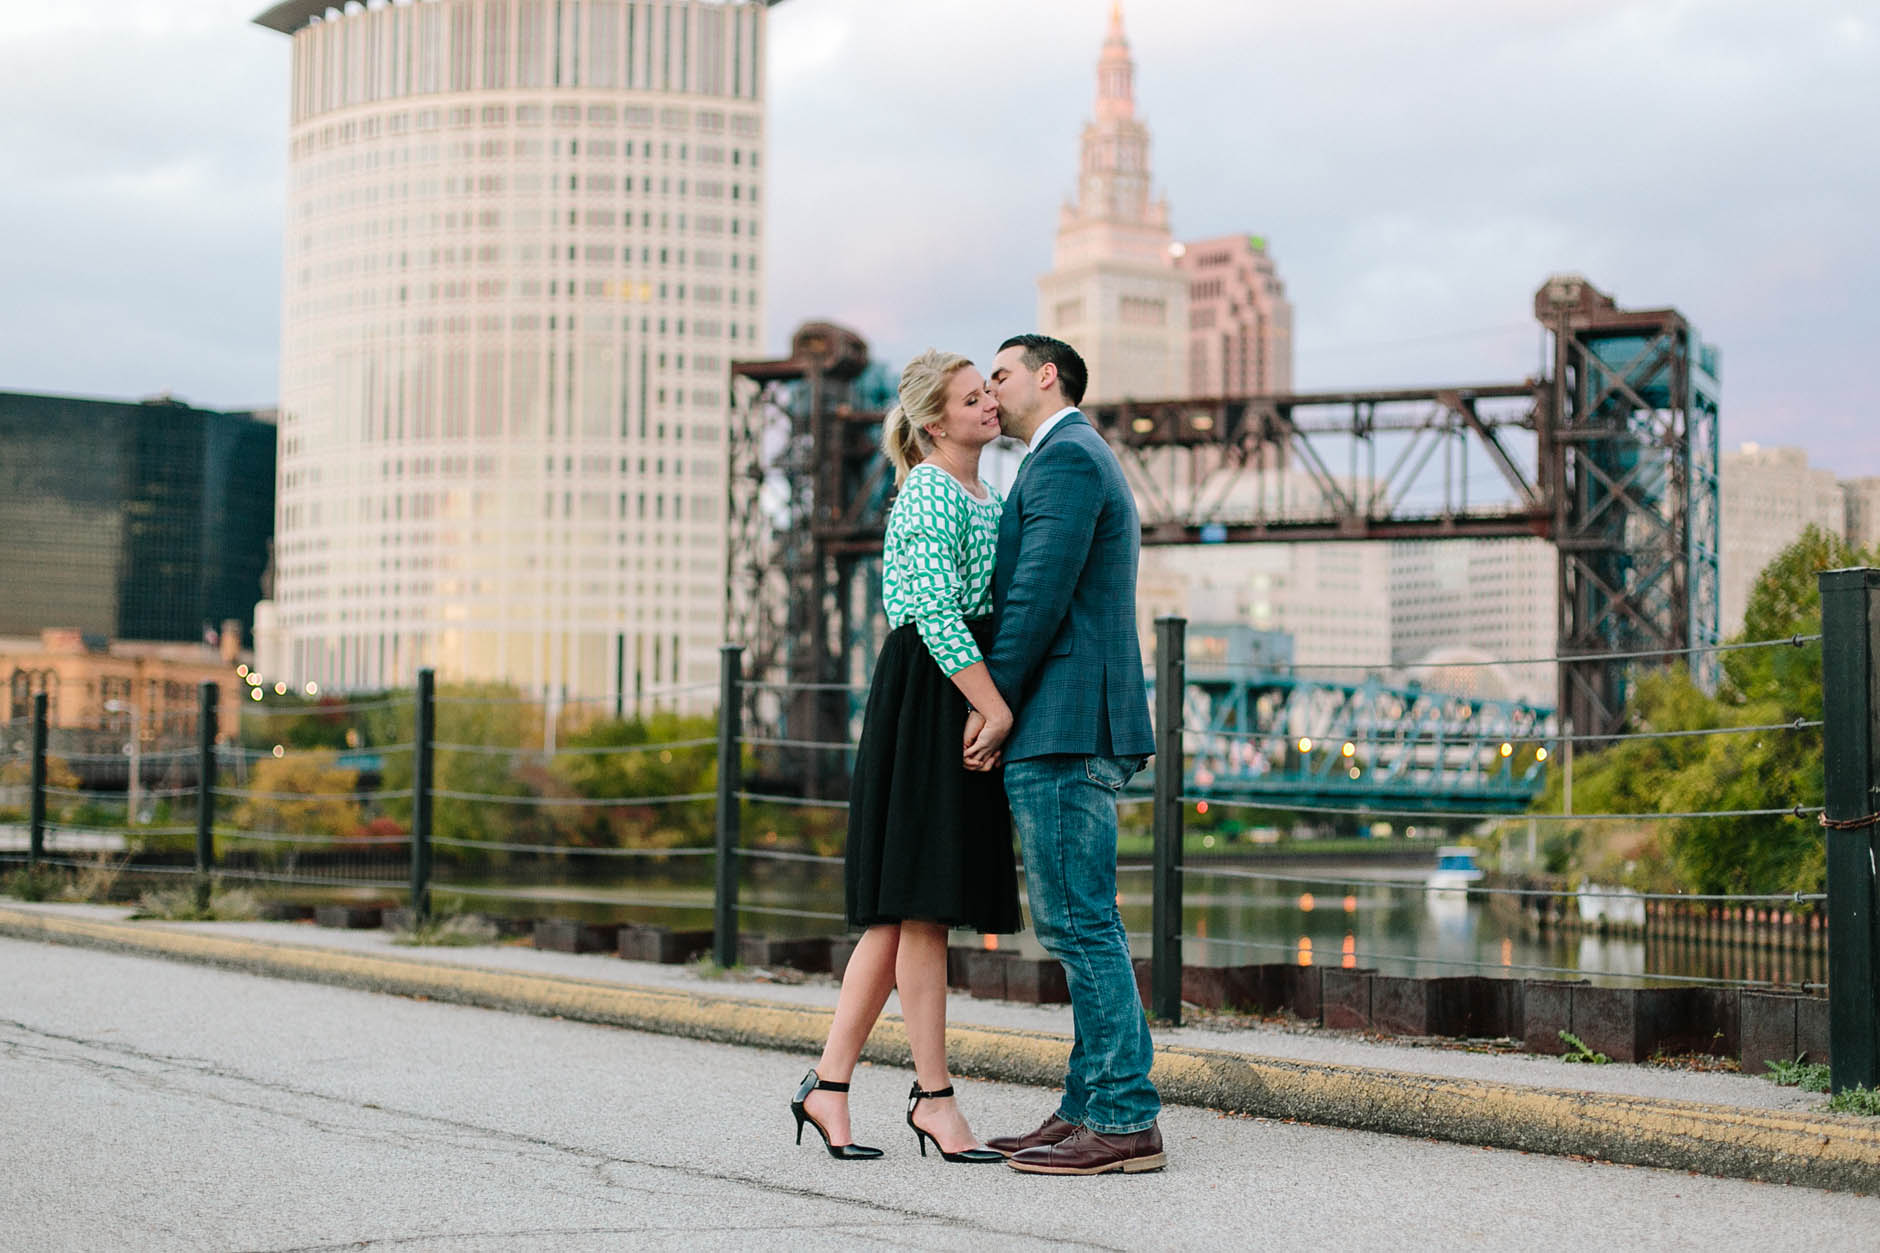 A fall engagement session in Cleveland with Katie & Sean.